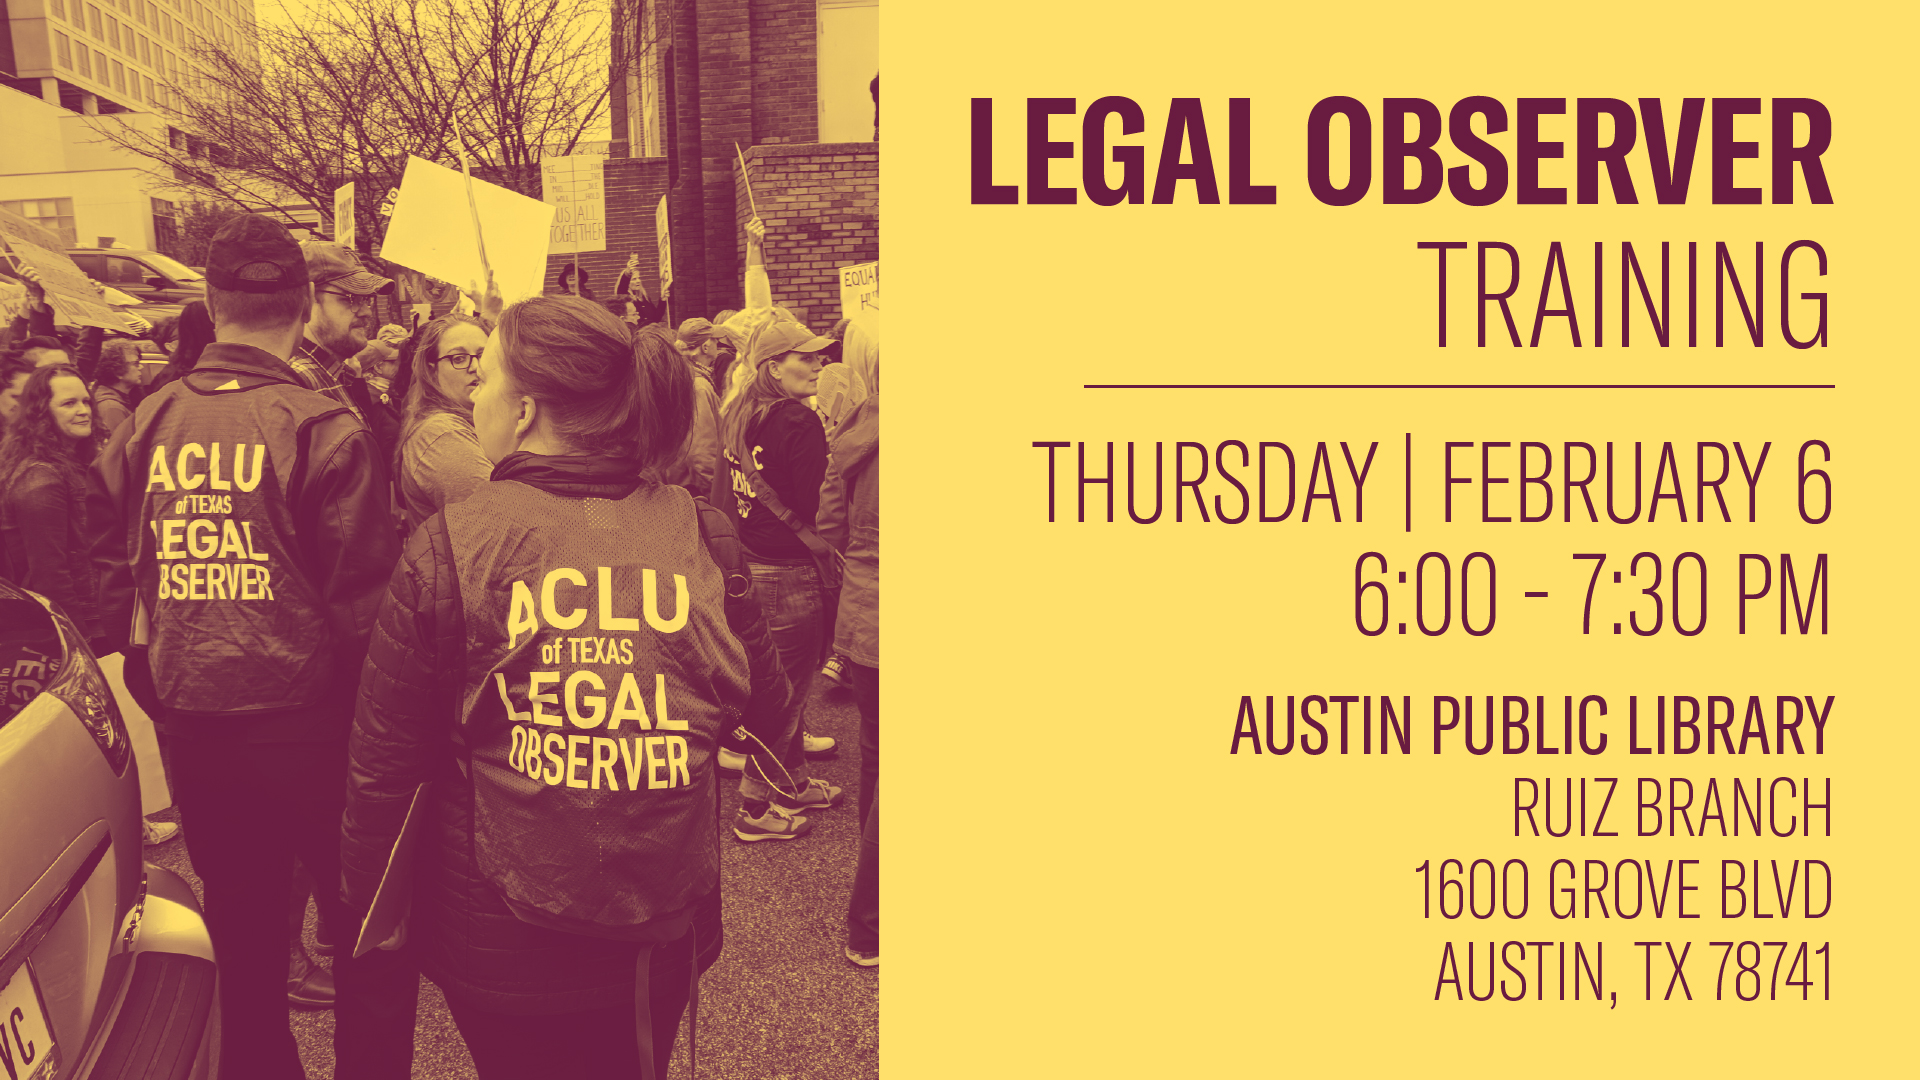 Image: An ACLU of Texas graphic with the headline 'Legal Observer training' : Austin Legal Observer Training, Thursday Feb 6, 6-7:30PM, Austin Public Library, Ruiz Branch, 1600 Grove Blvd Austin TX 78741